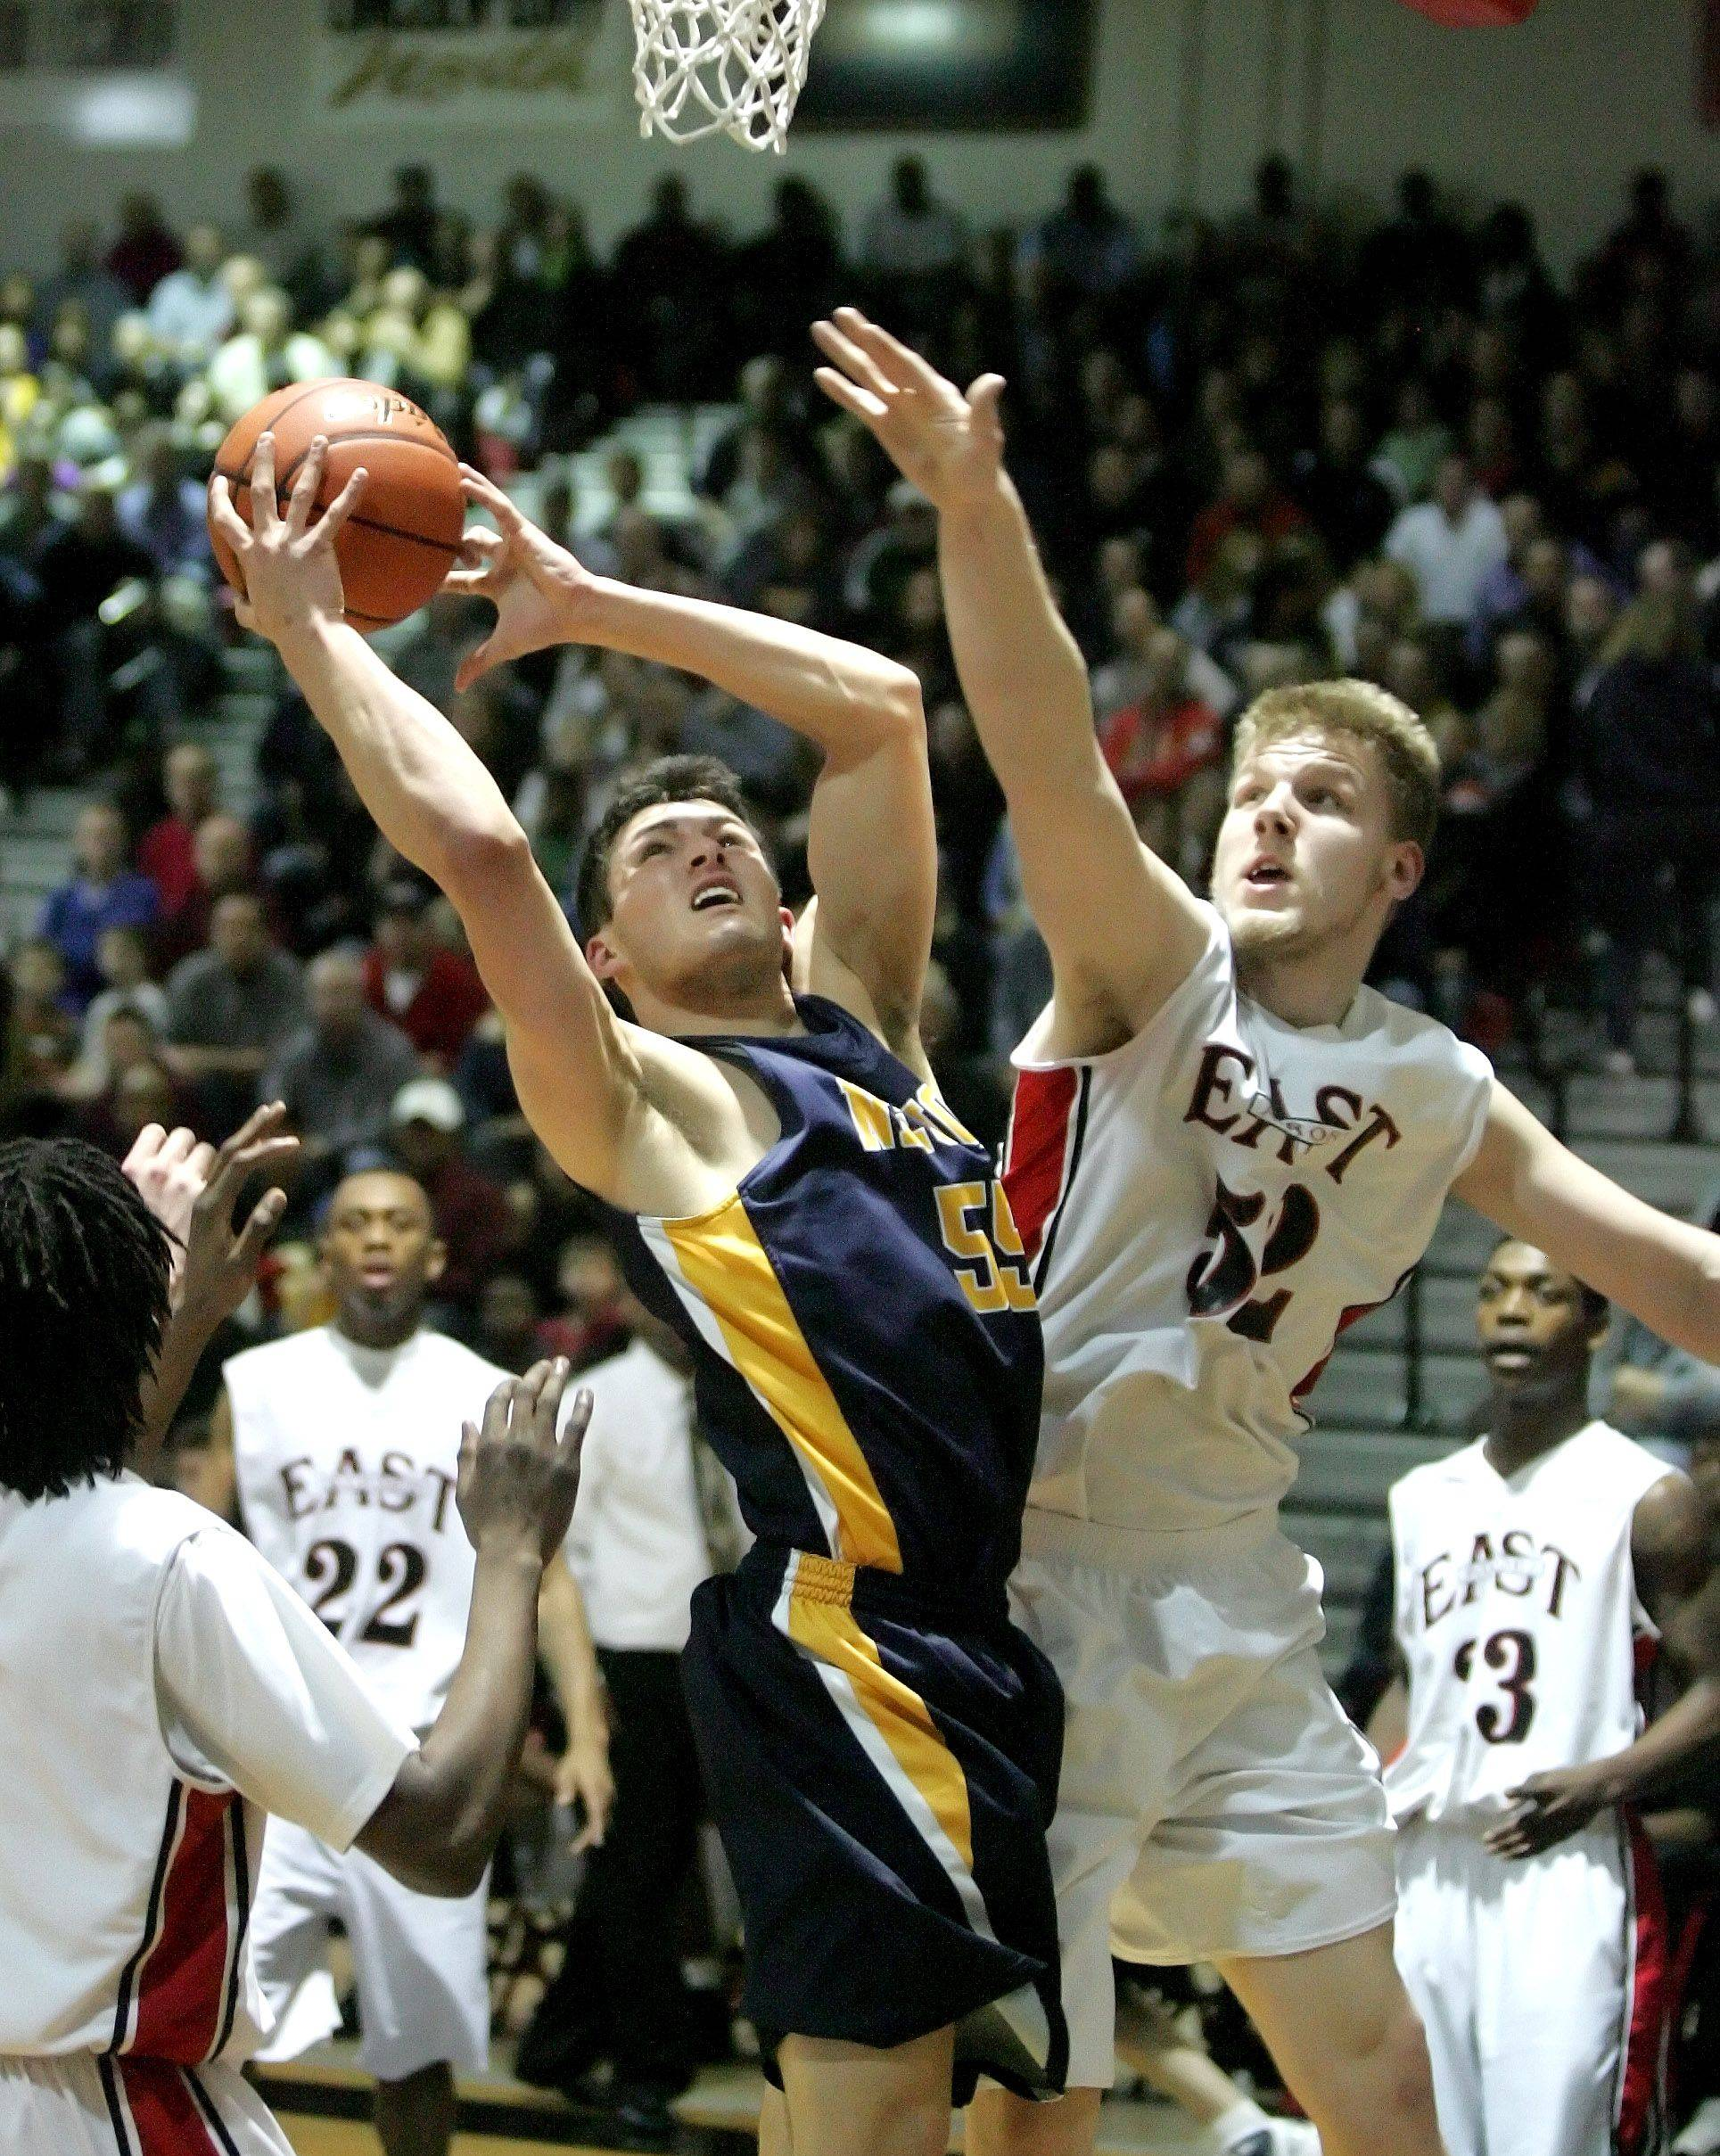 Neuqua Valley's Alex Karkazis, left, takes a shot past East Aurora's Tom Okapal during Friday's regional basketball final at Bolingbrook High School.